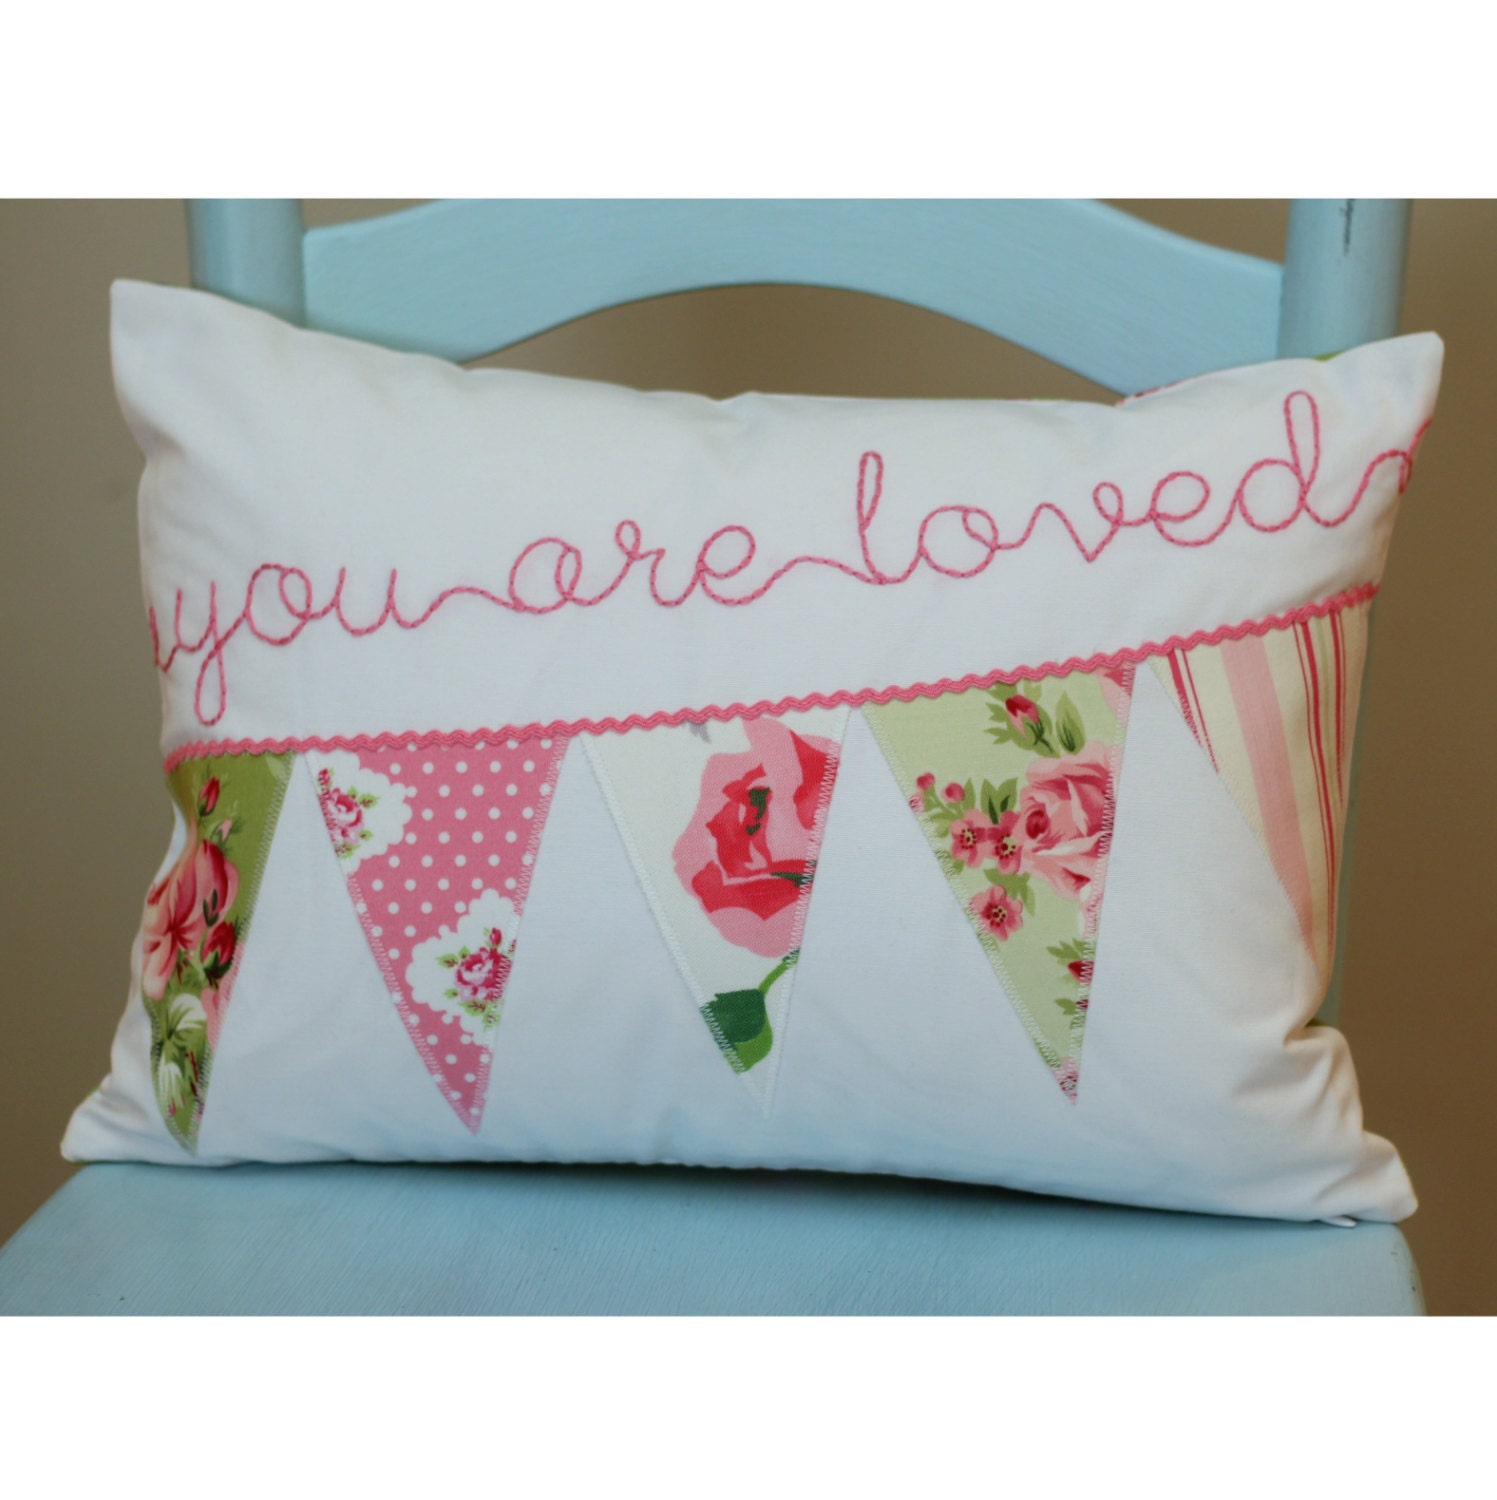 Shabby Chic Pillow Personalized Pillow Cover by tadacreations